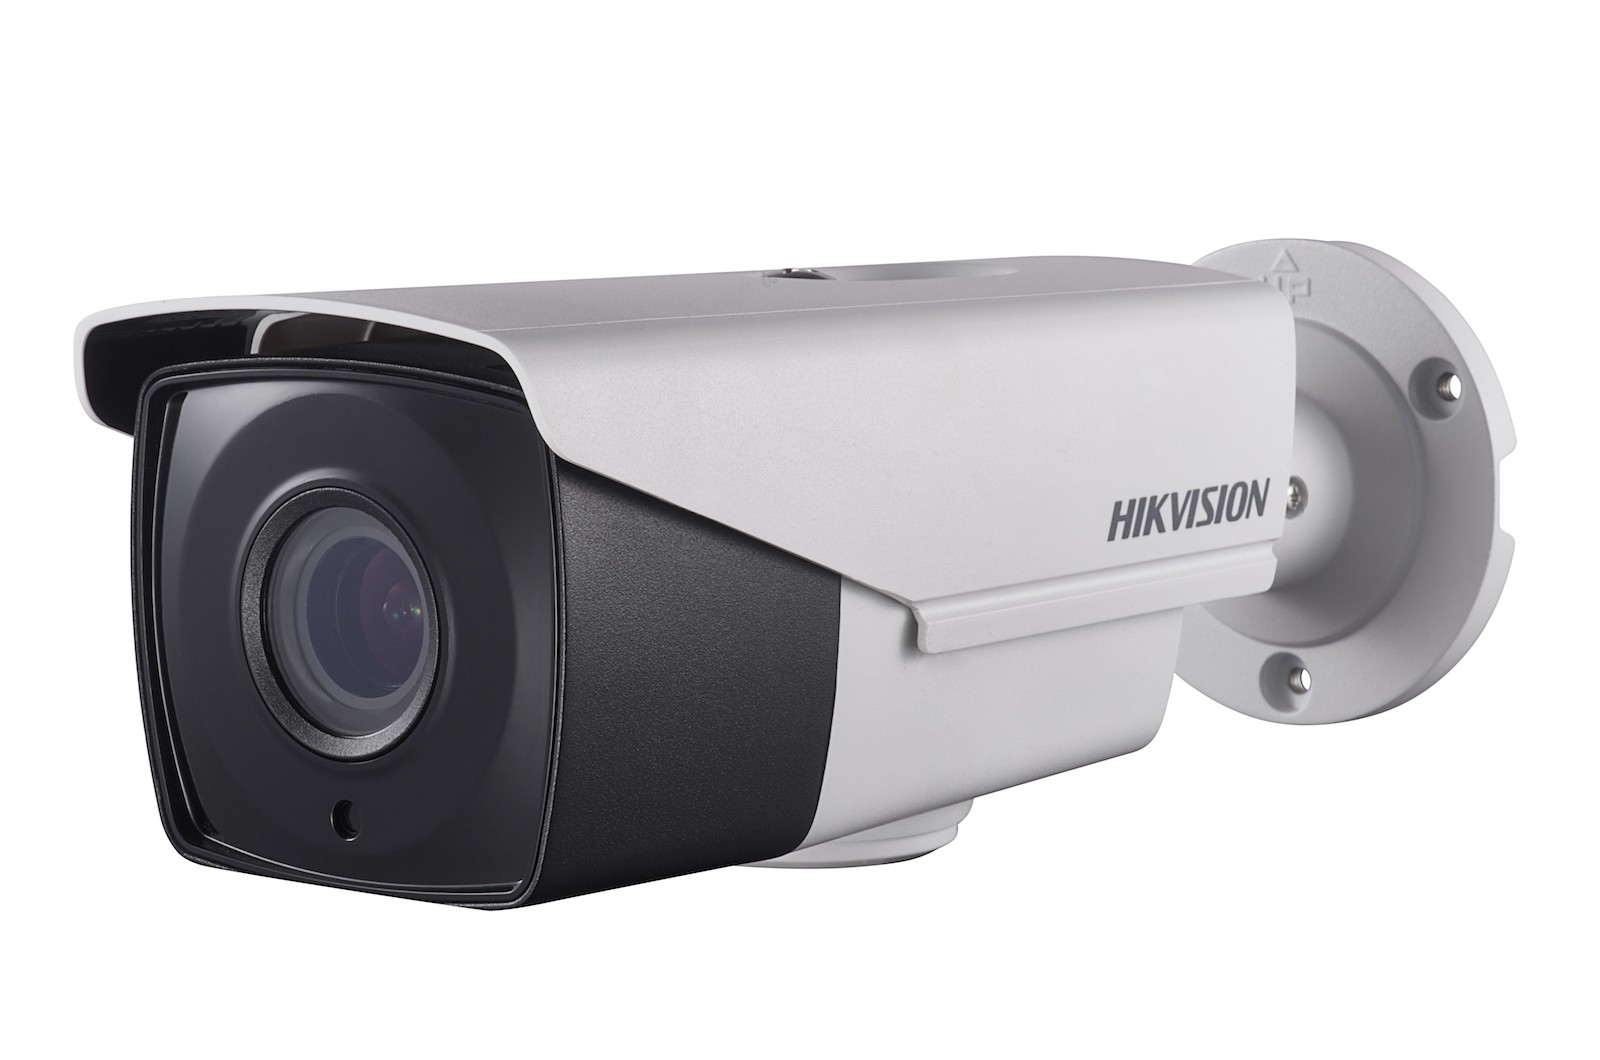 Hikvision DS-2CE16H1T-IT3Z 5MP 1080P VF 2.8-12MM Motorised Vari-Focal Lens Analog HD-TVI Turbo HD Exir IP67 BNC Coax Camera Smart IR 40M Bullet Camera